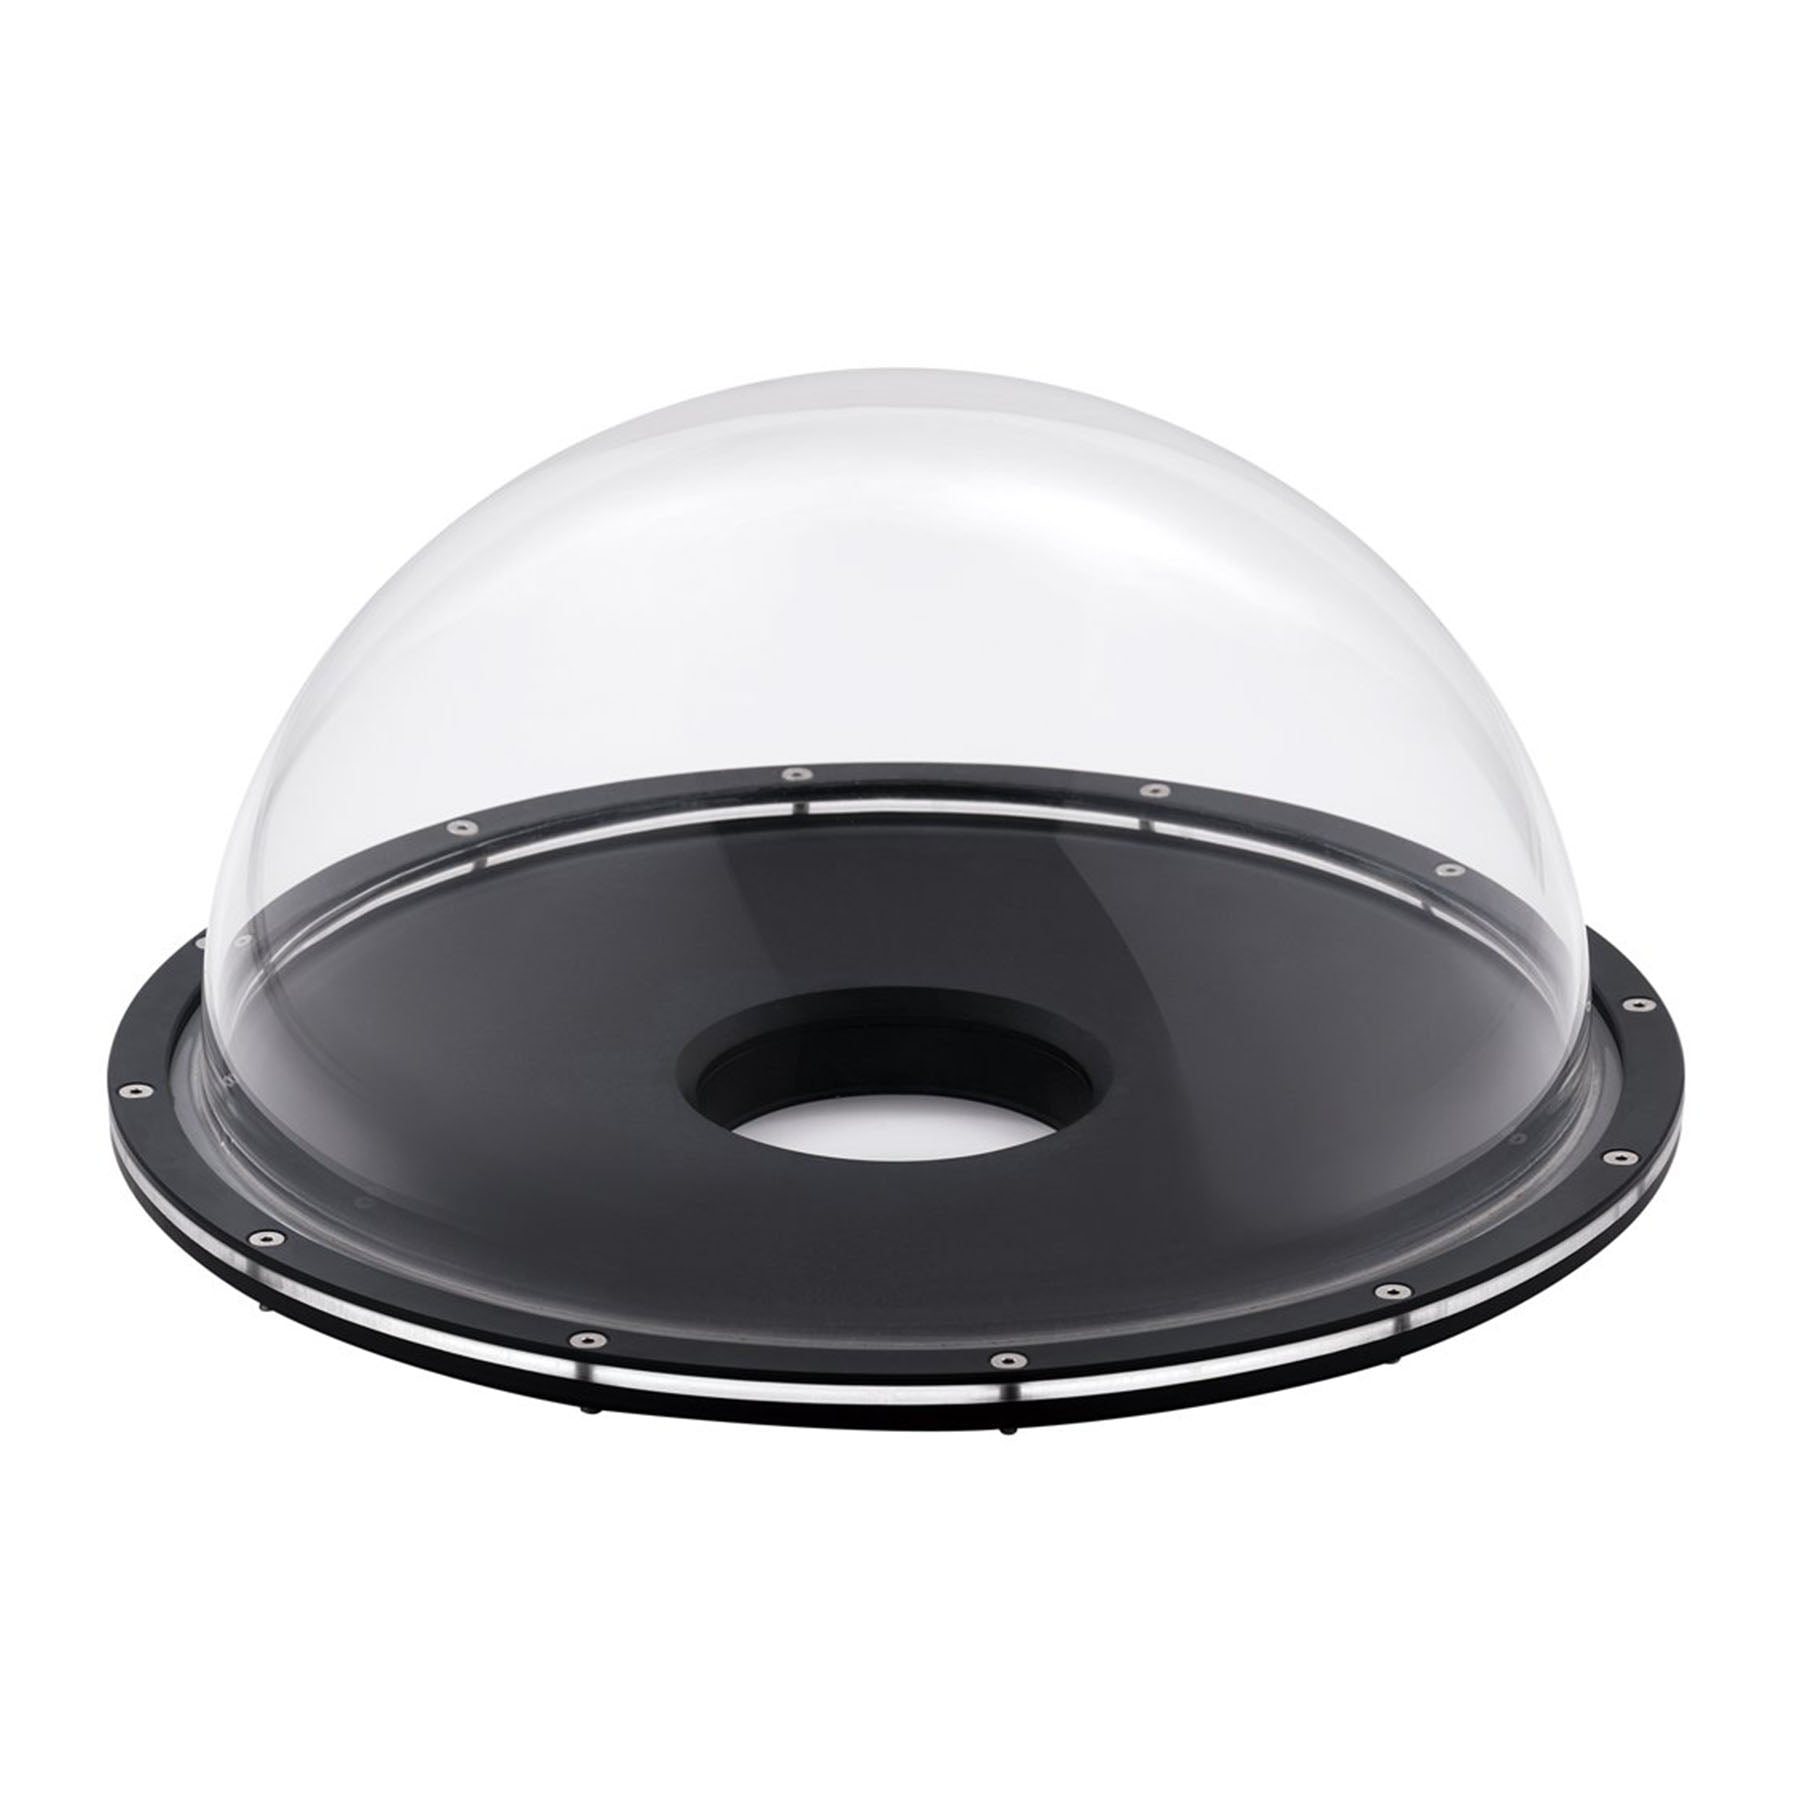 AquaTech PD-16 Lens Dome Port for Underwater Housing